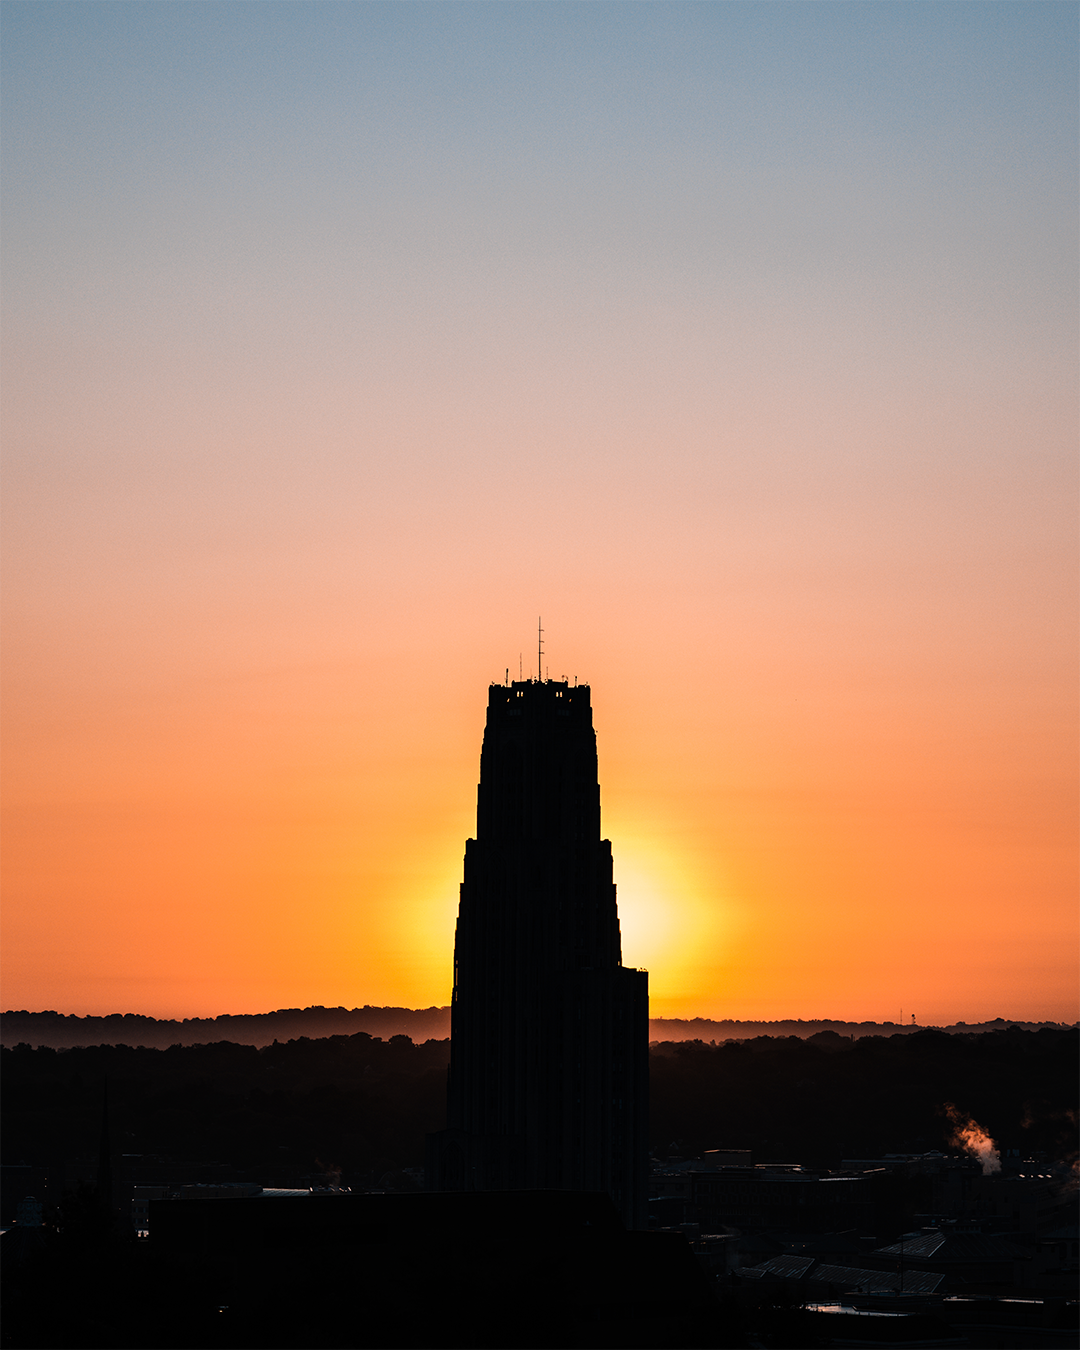 Cathedral of Learning during sunrise